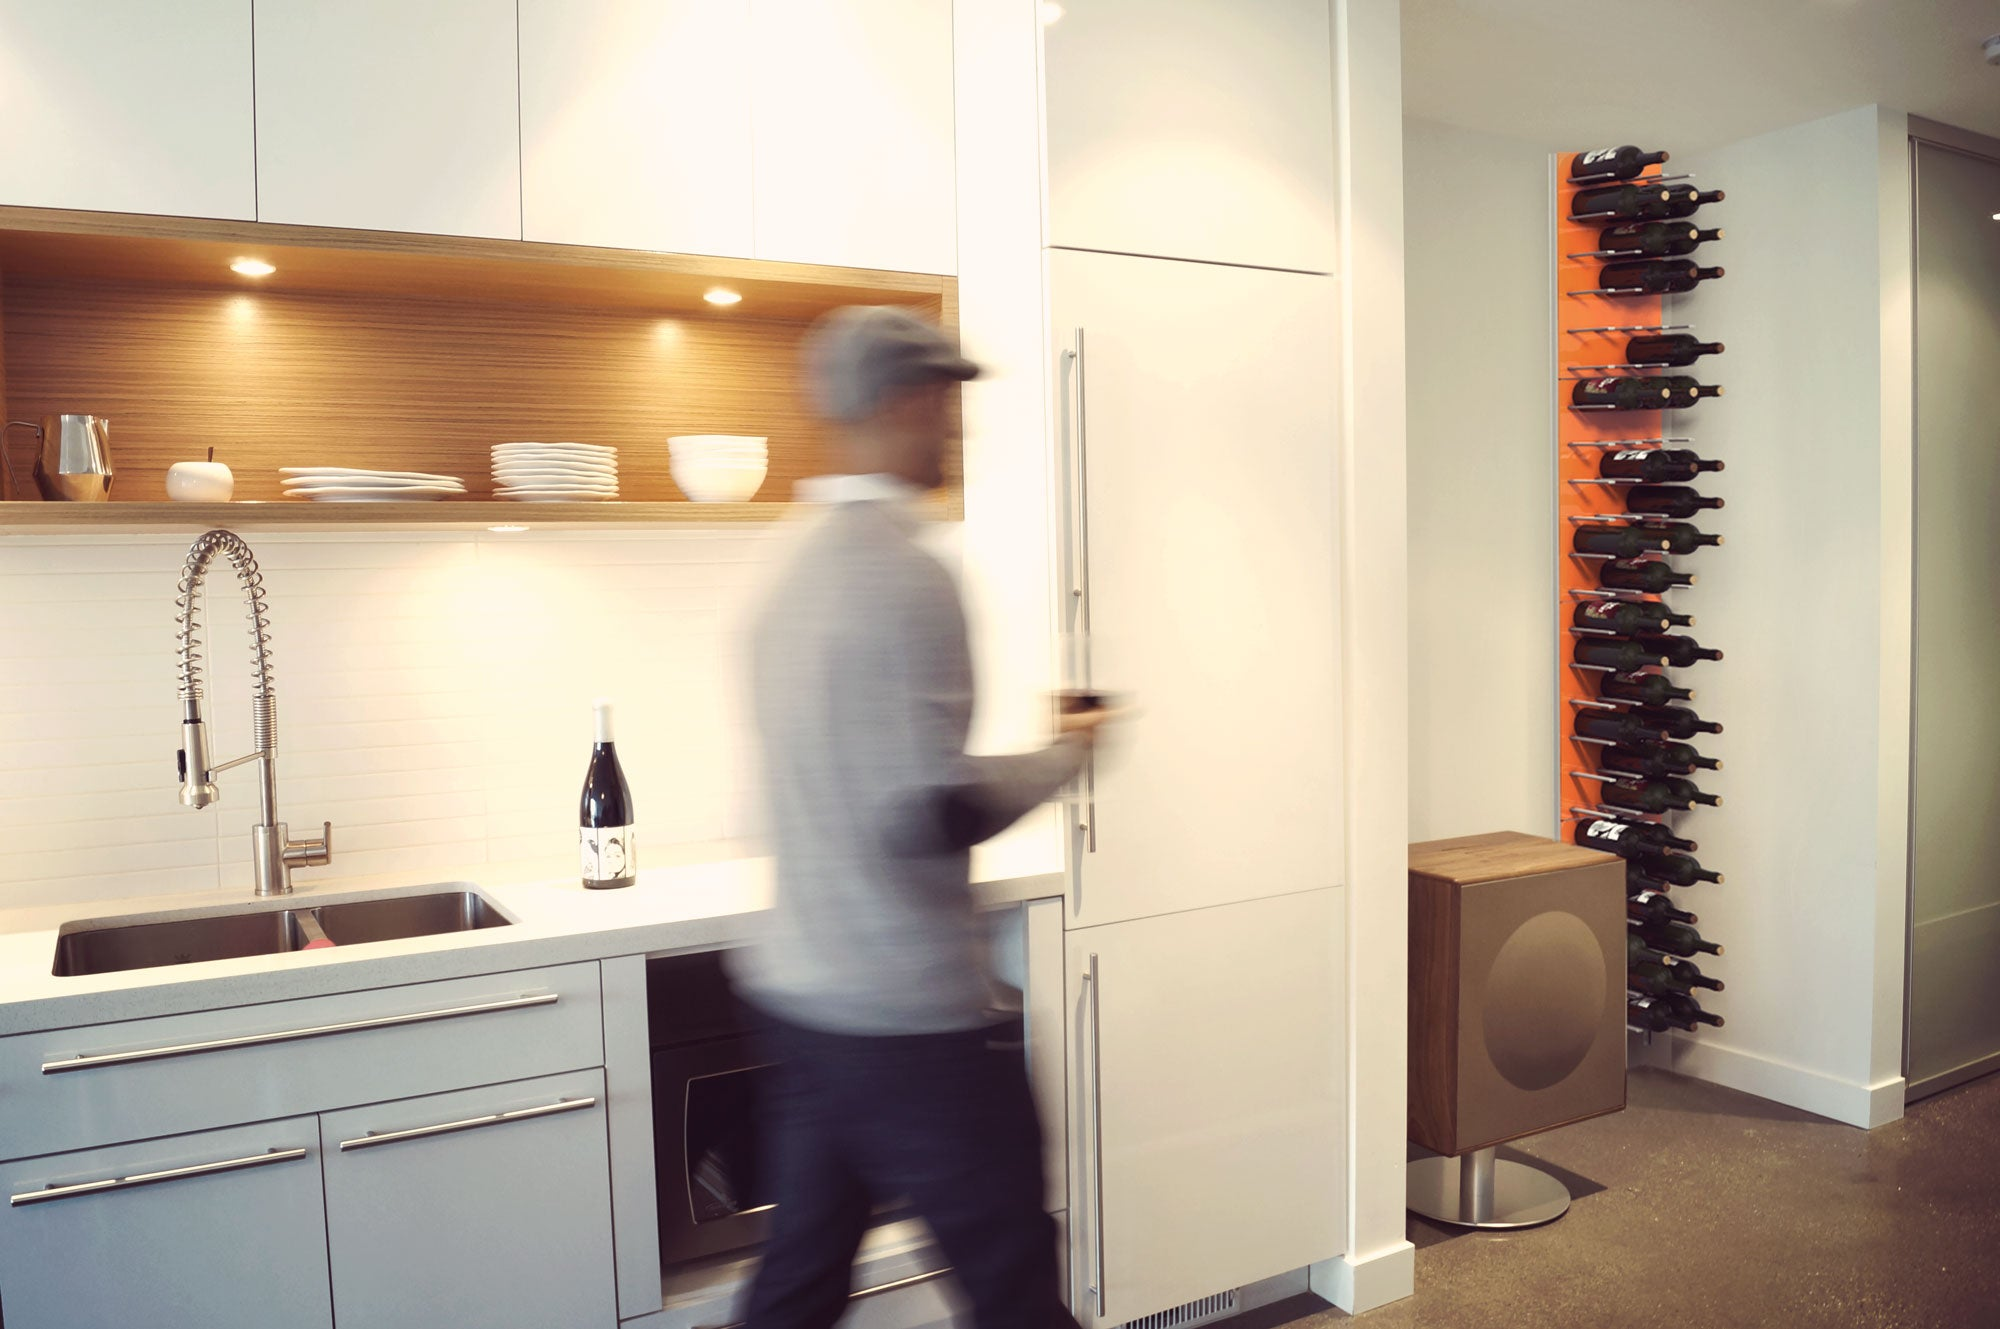 floor-to-ceiling wine wall rack - modular storage panels